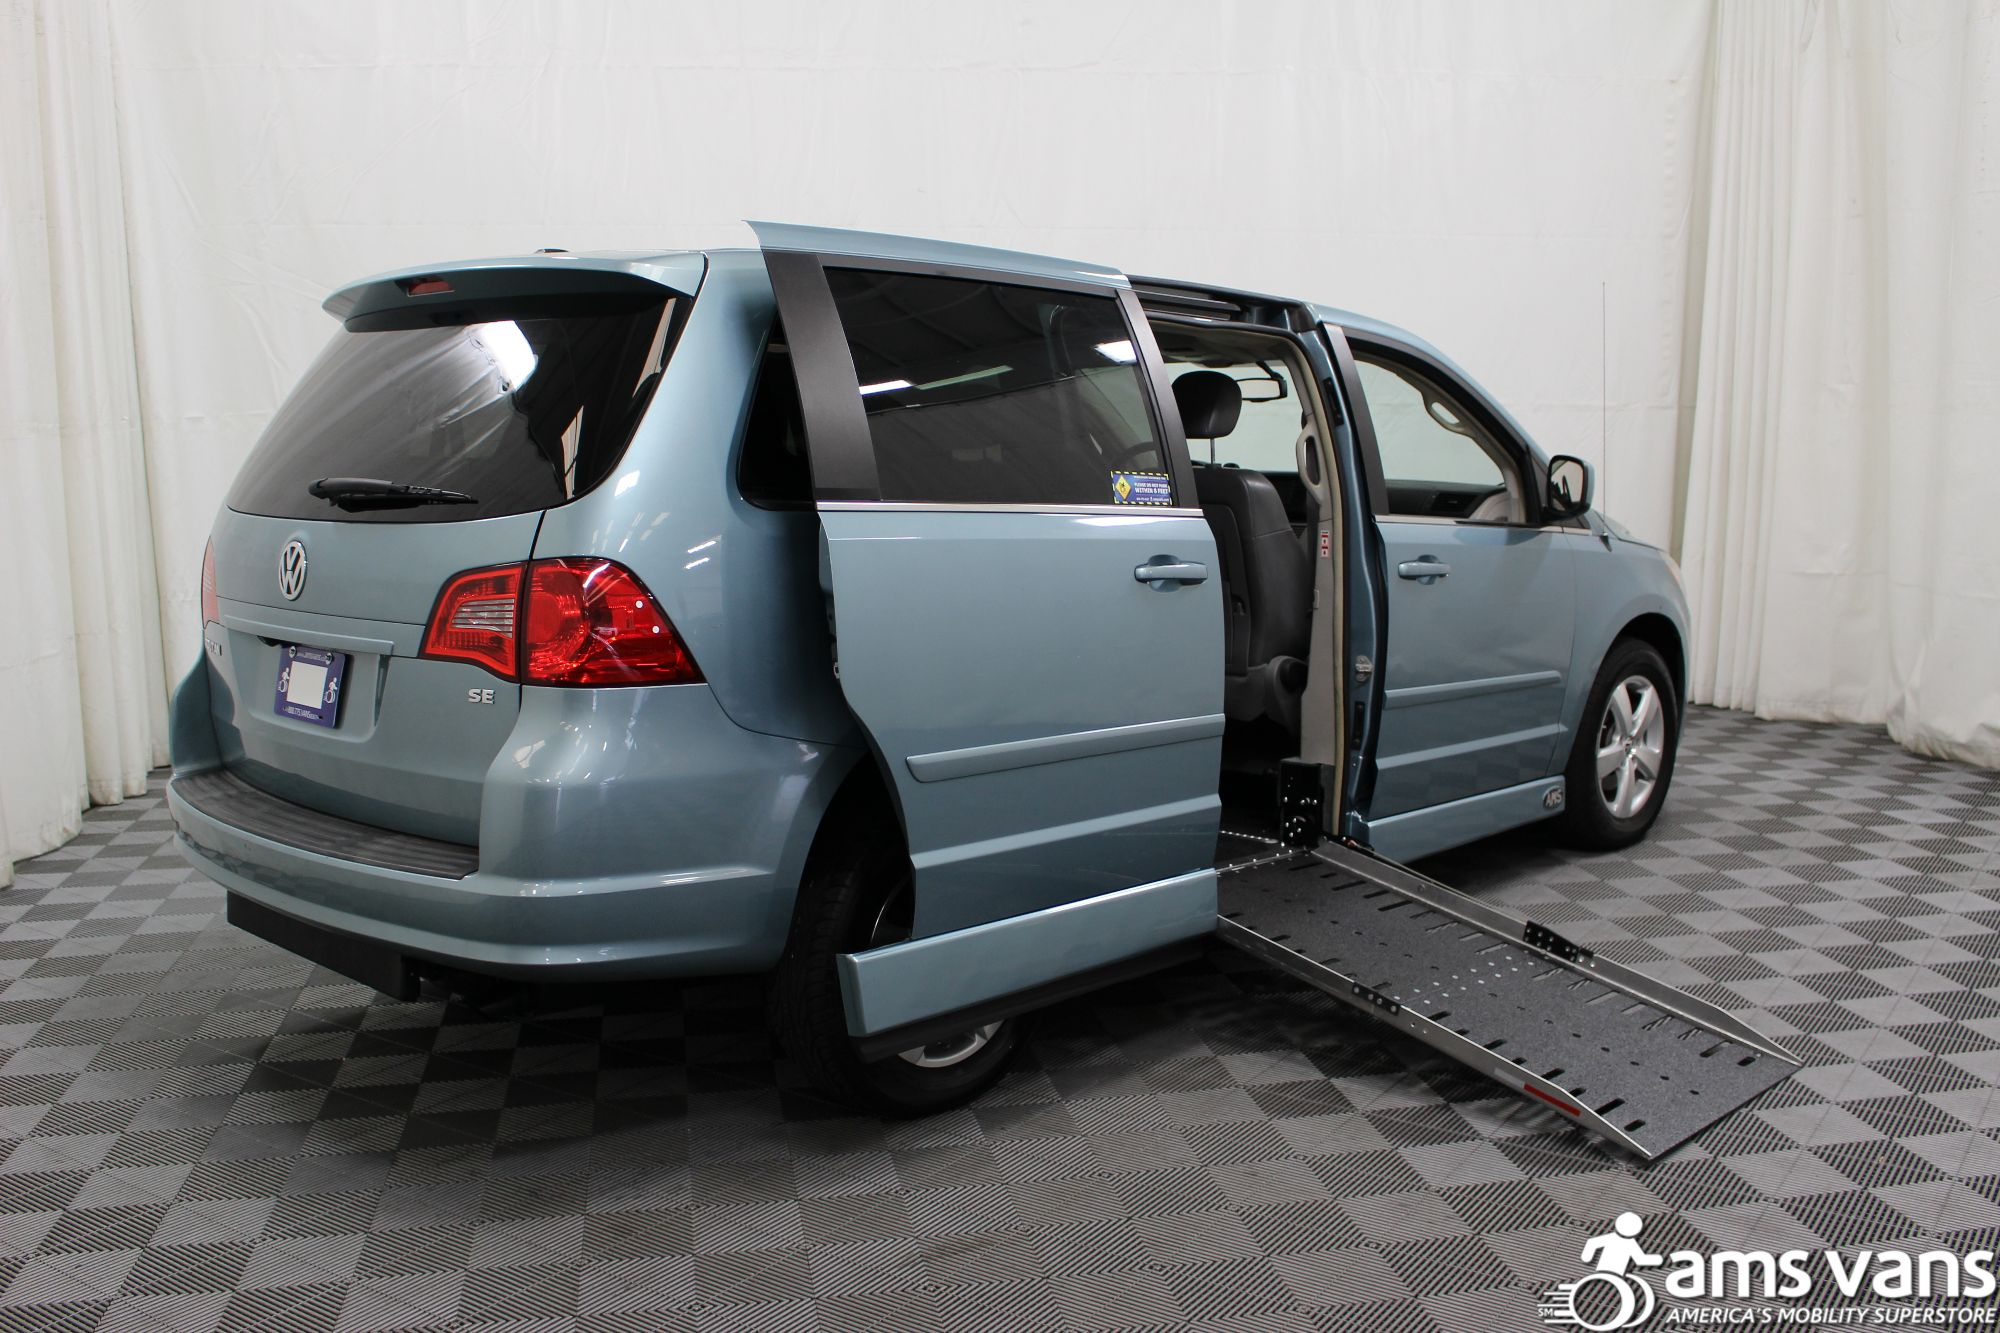 2010 Volkswagen Routan Wheelchair Van For Sale #3